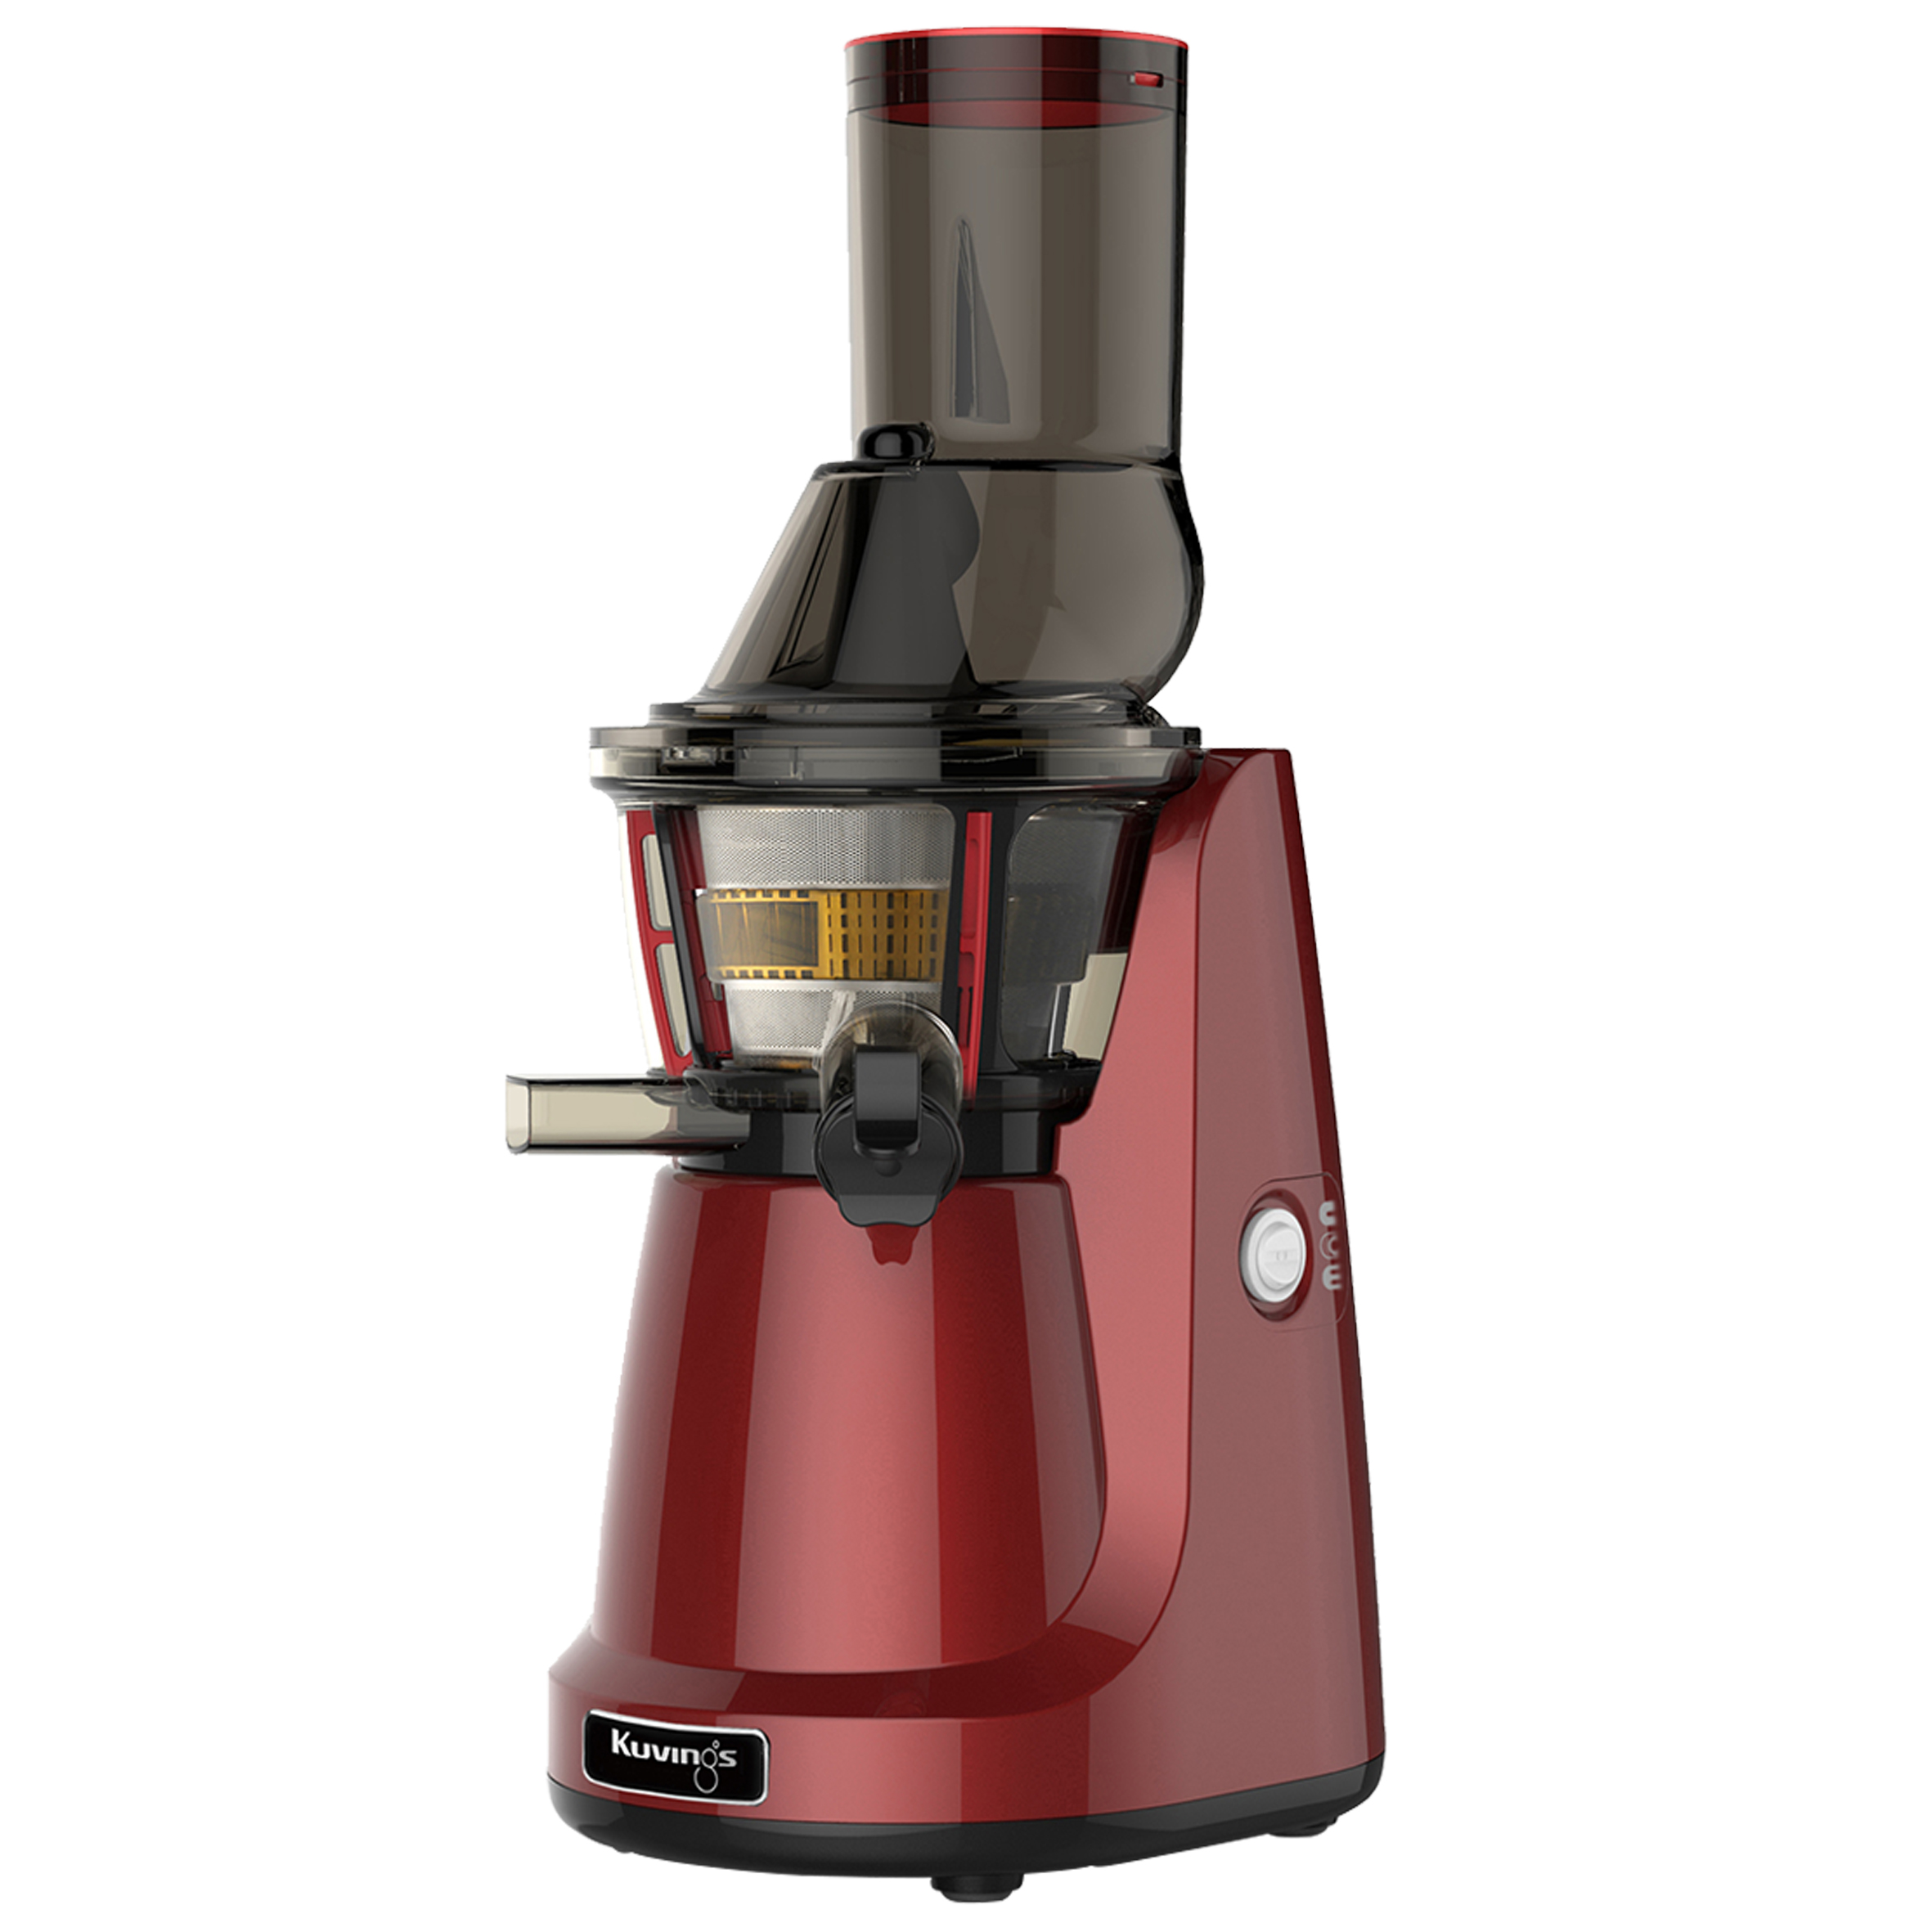 Kuvings Whole Slow Juicer B3000 Reviews - ProductReview.com.au